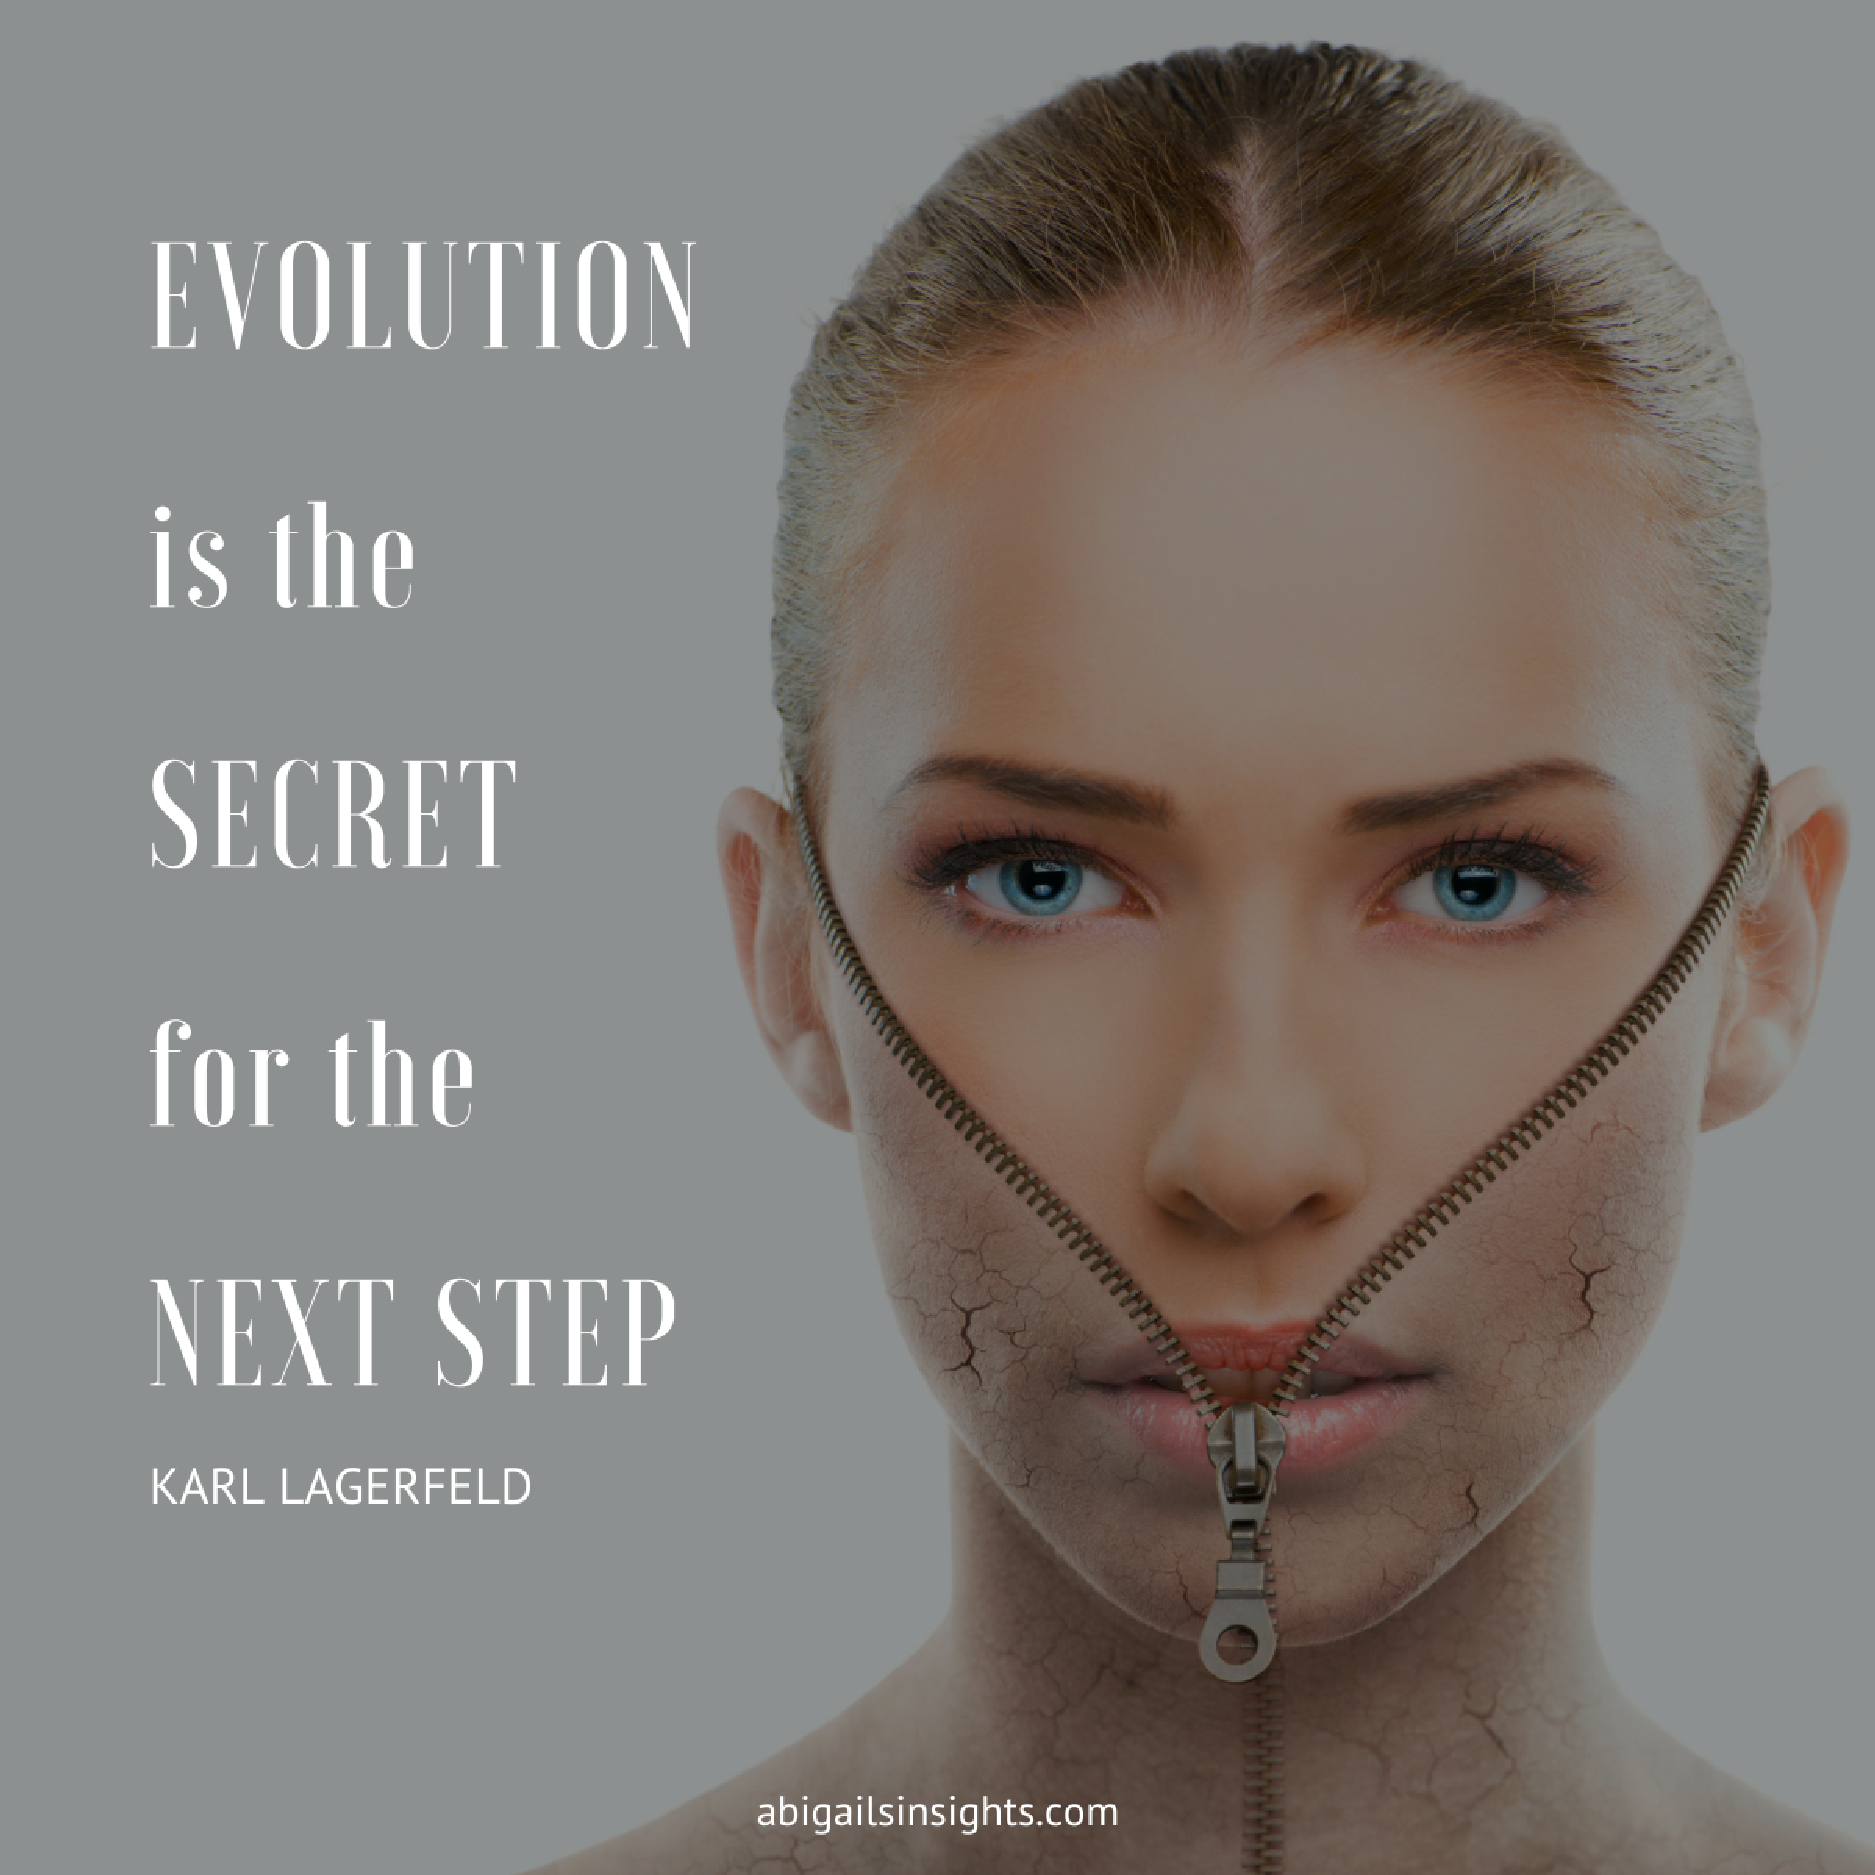 Evolution is the secret for the next step